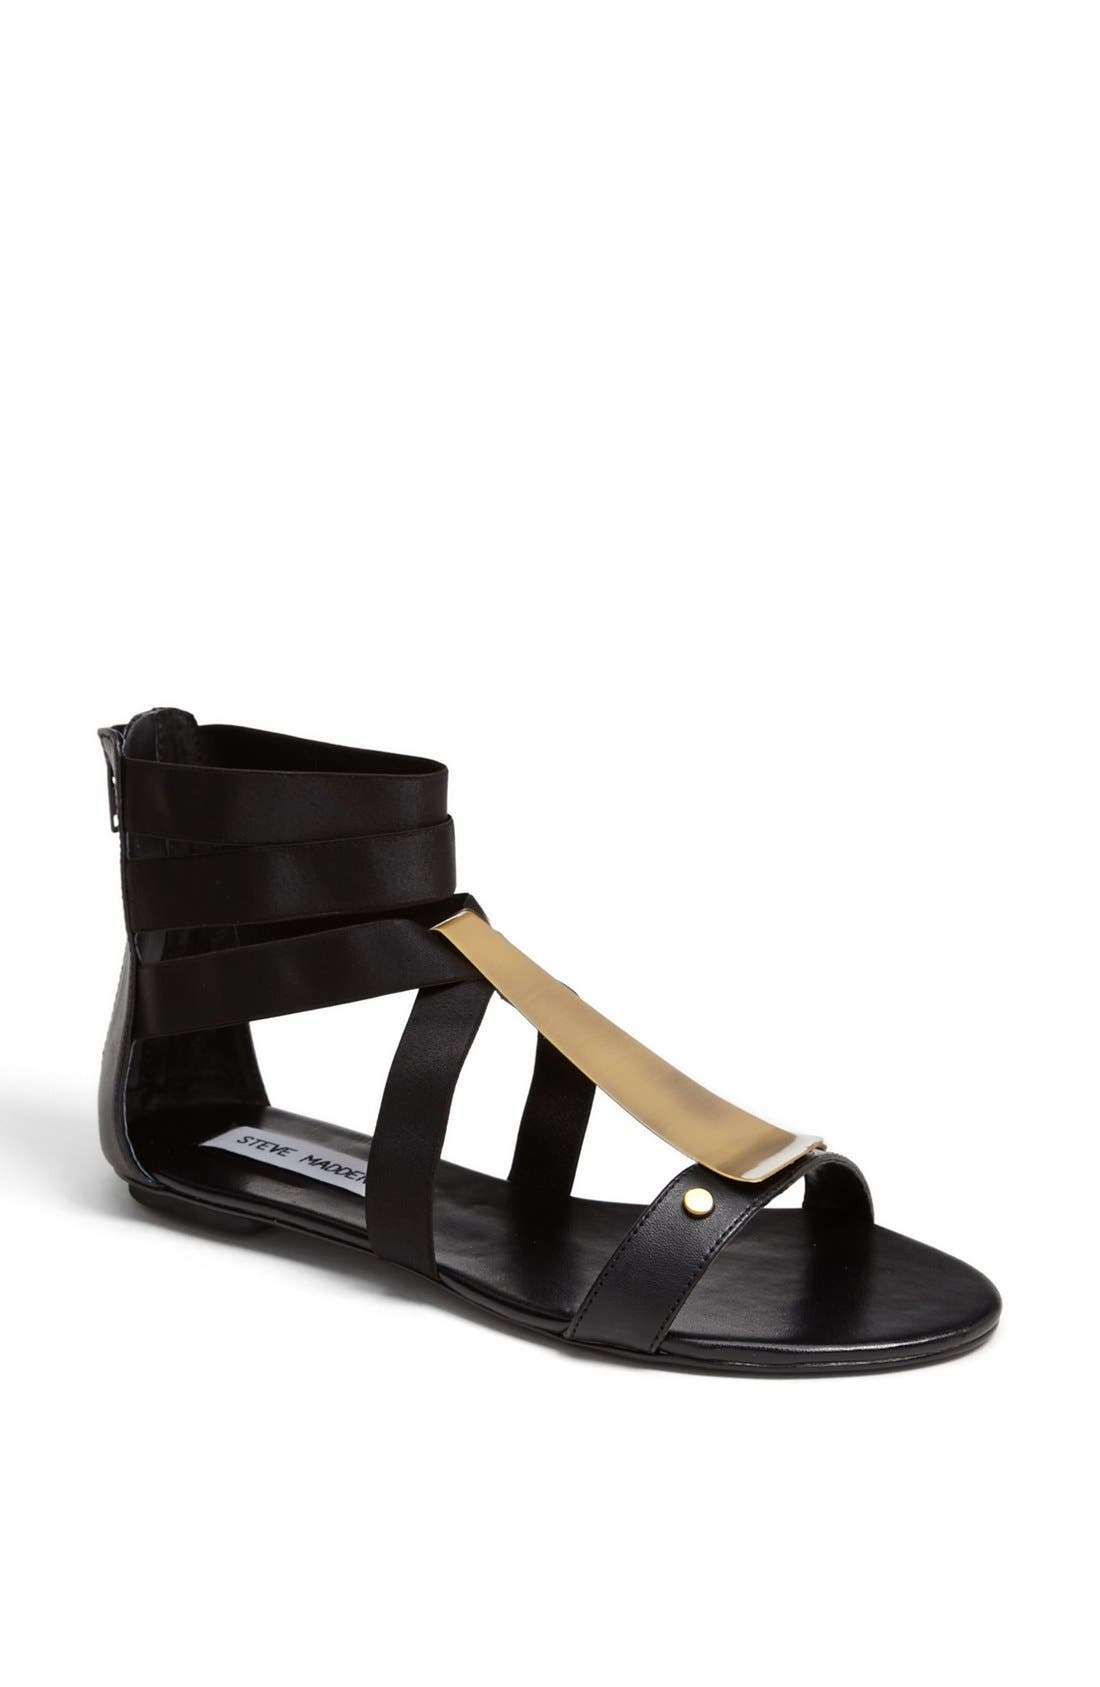 Alternate Image 1 Selected - Steve Madden 'Hydralik' Sandal